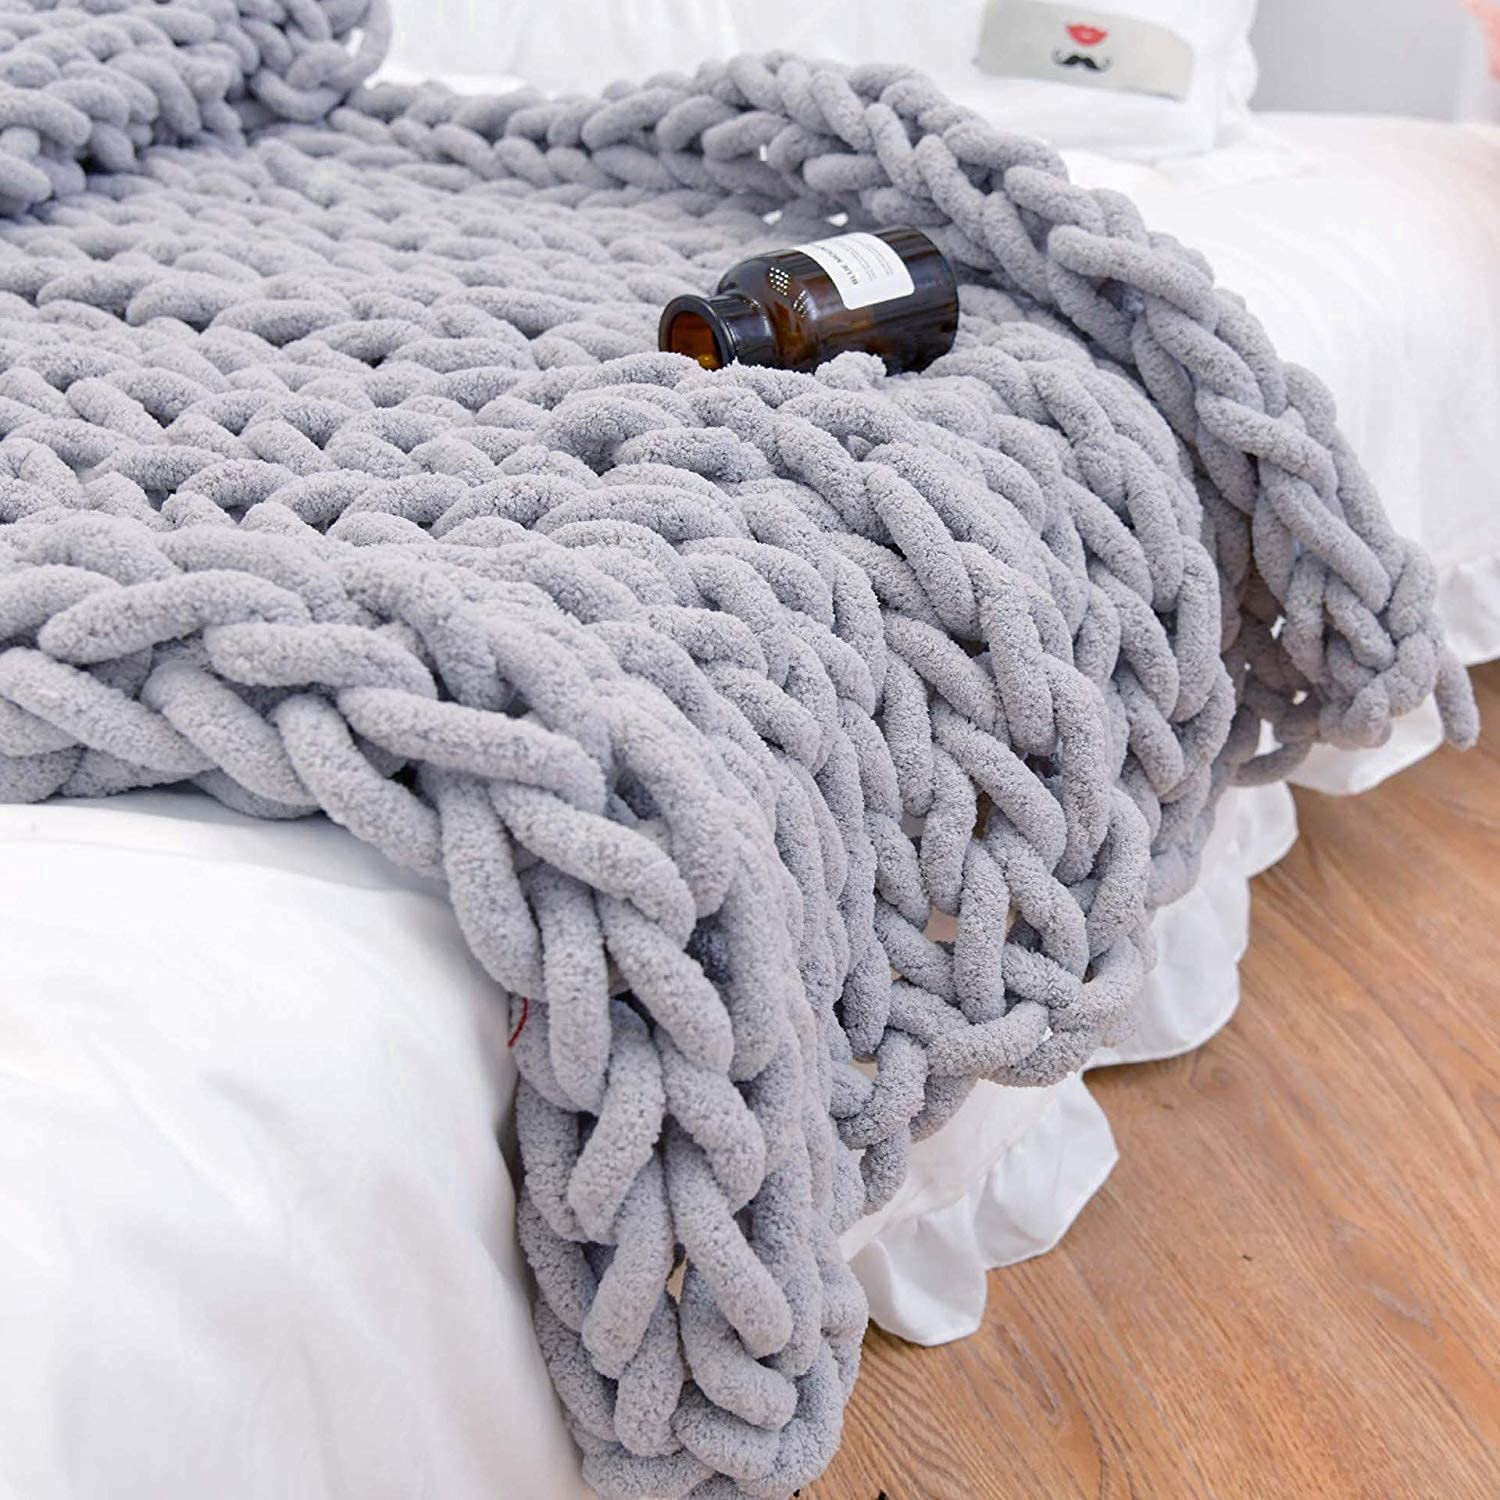 clootess Chunky Knit Blanket Chenille Throw Cozy for Soft Warm - Max 86% Free shipping / New OFF